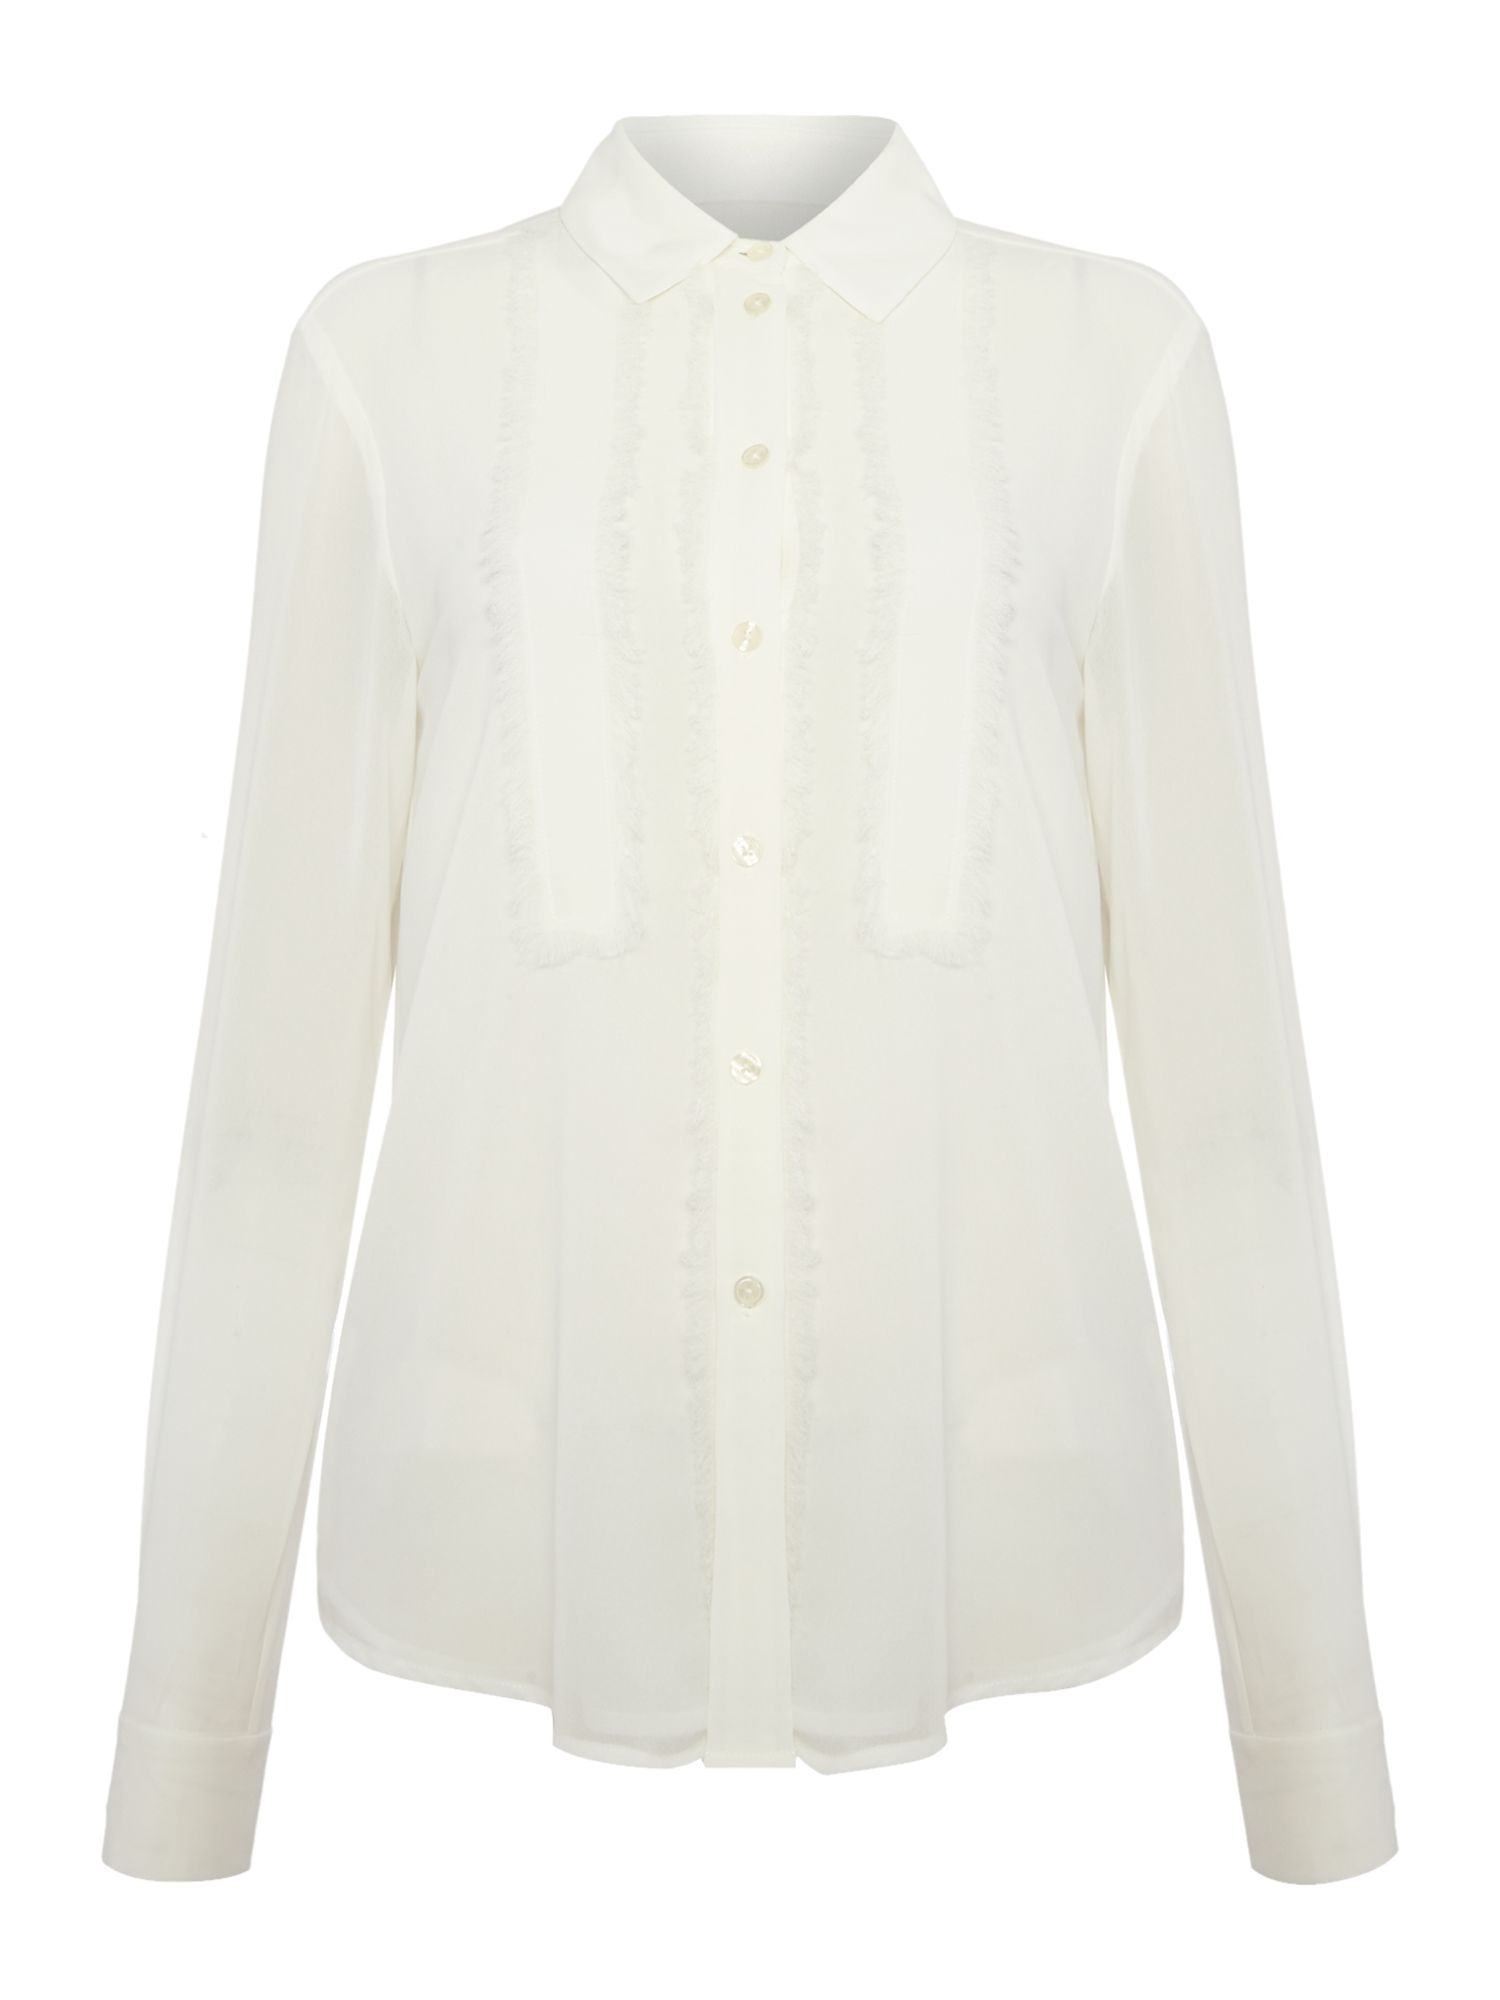 Michael Kors Long Sleeve Fray Detail Shirt, Ecru